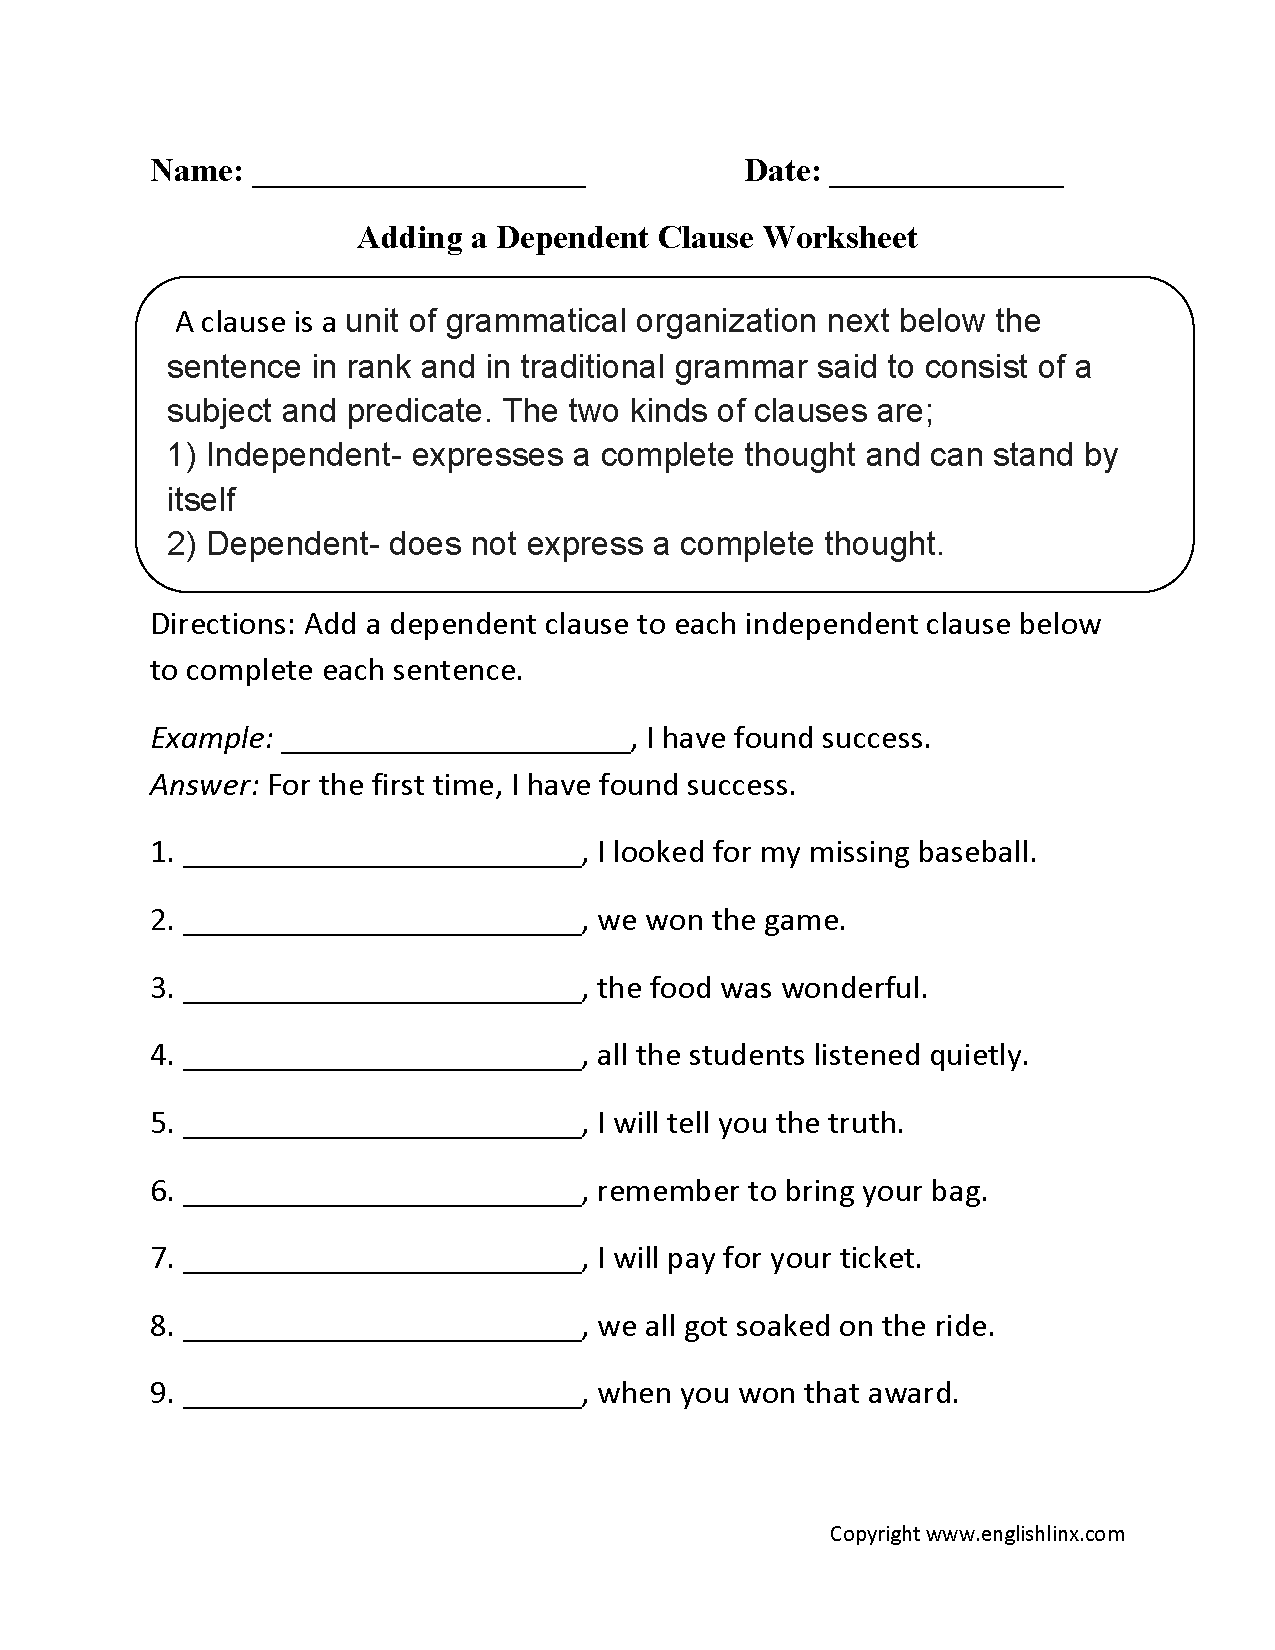 Adding A Dependent Clause Worksheet